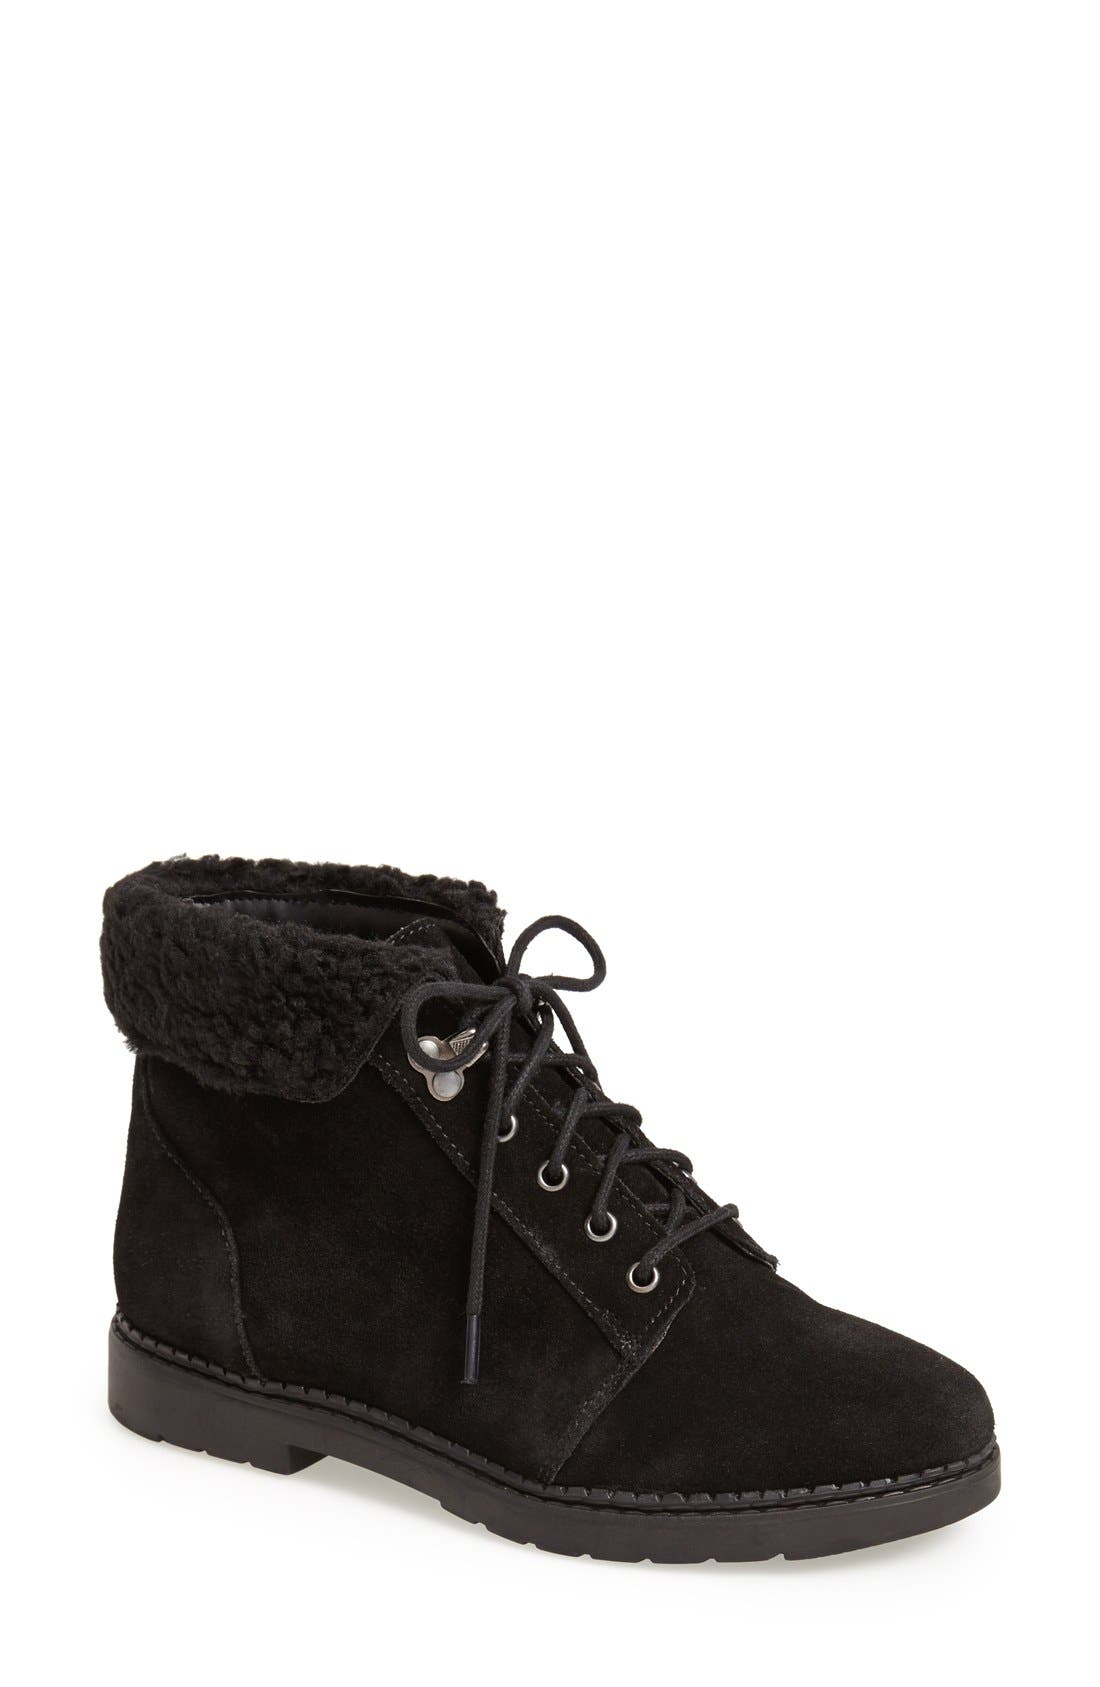 Main Image - Topshop 'Brody' Suede Ankle Boot (Women)